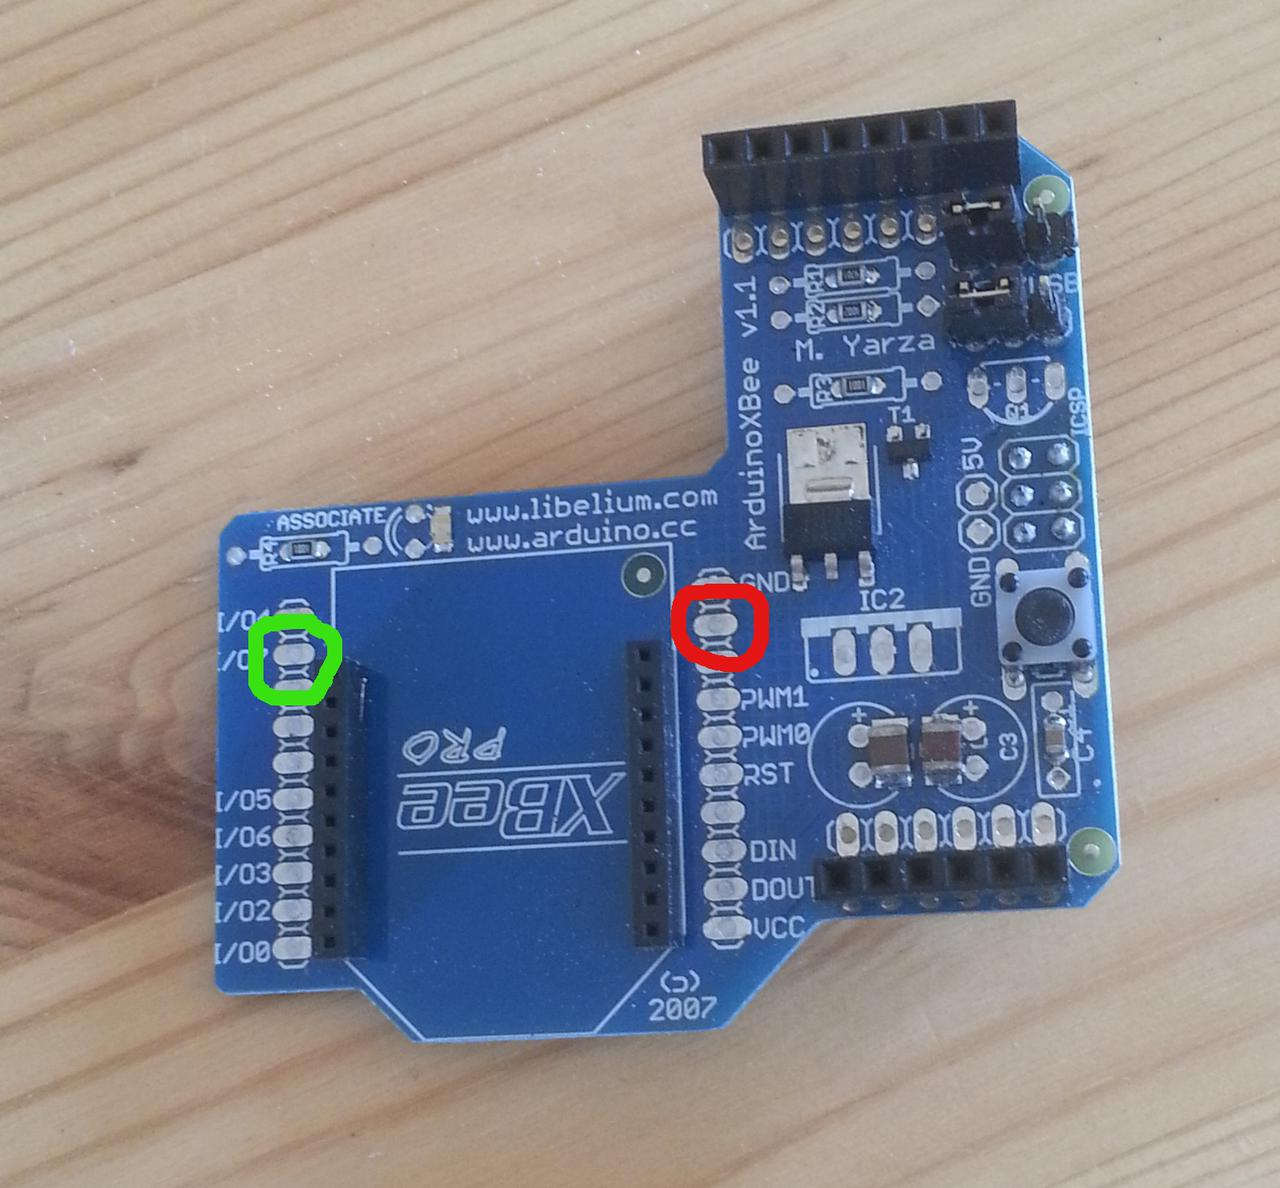 Pins relating to XBee sleep mode